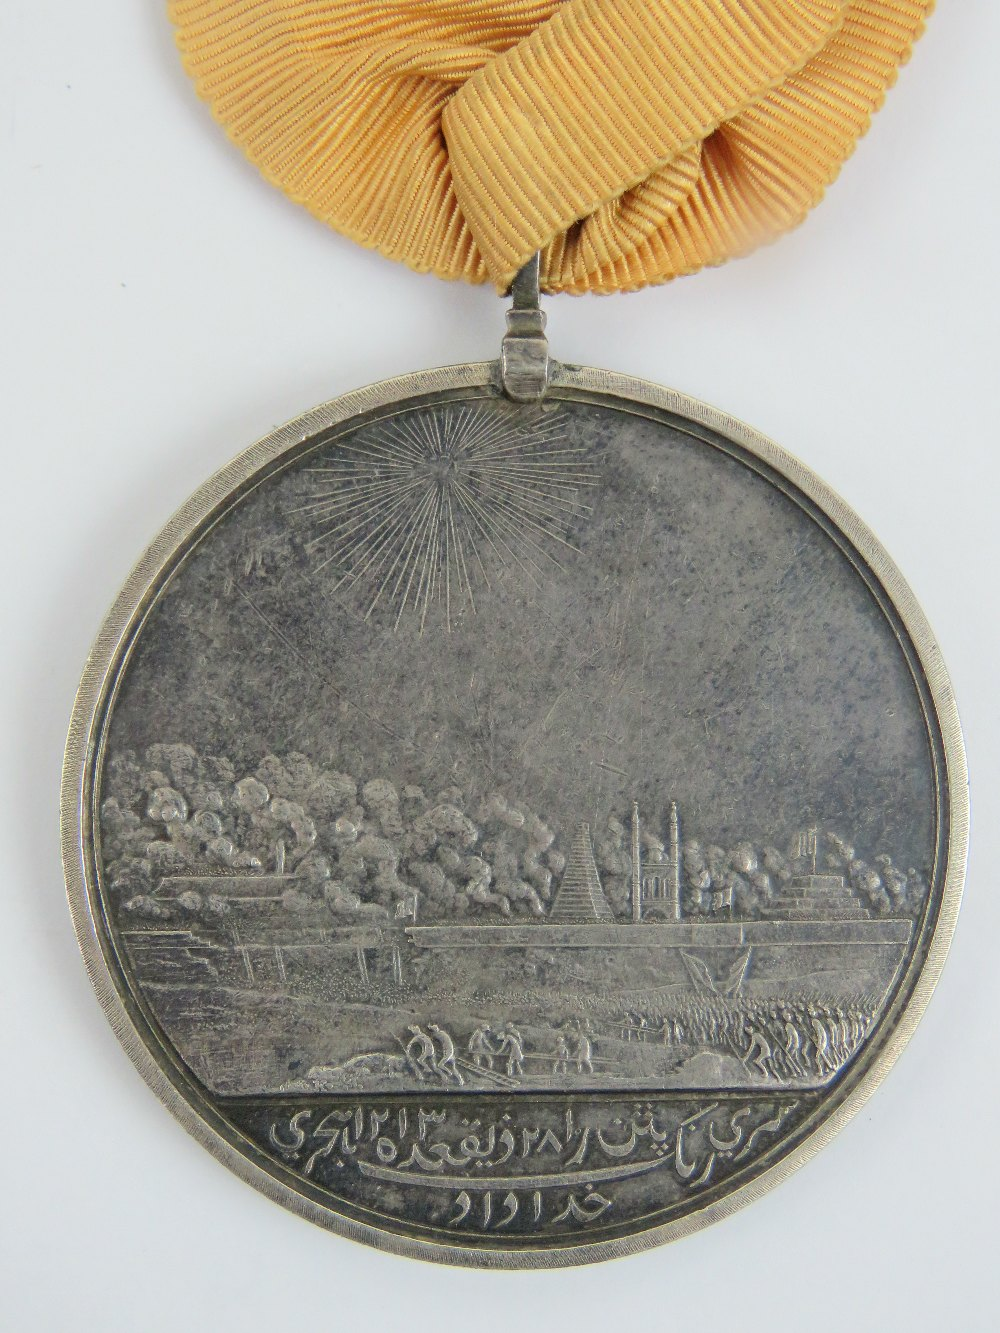 An Honourable East India Company medal for Seringapatam 1799, with ribbon, silver, 48mm, Soho Mint. - Image 2 of 2